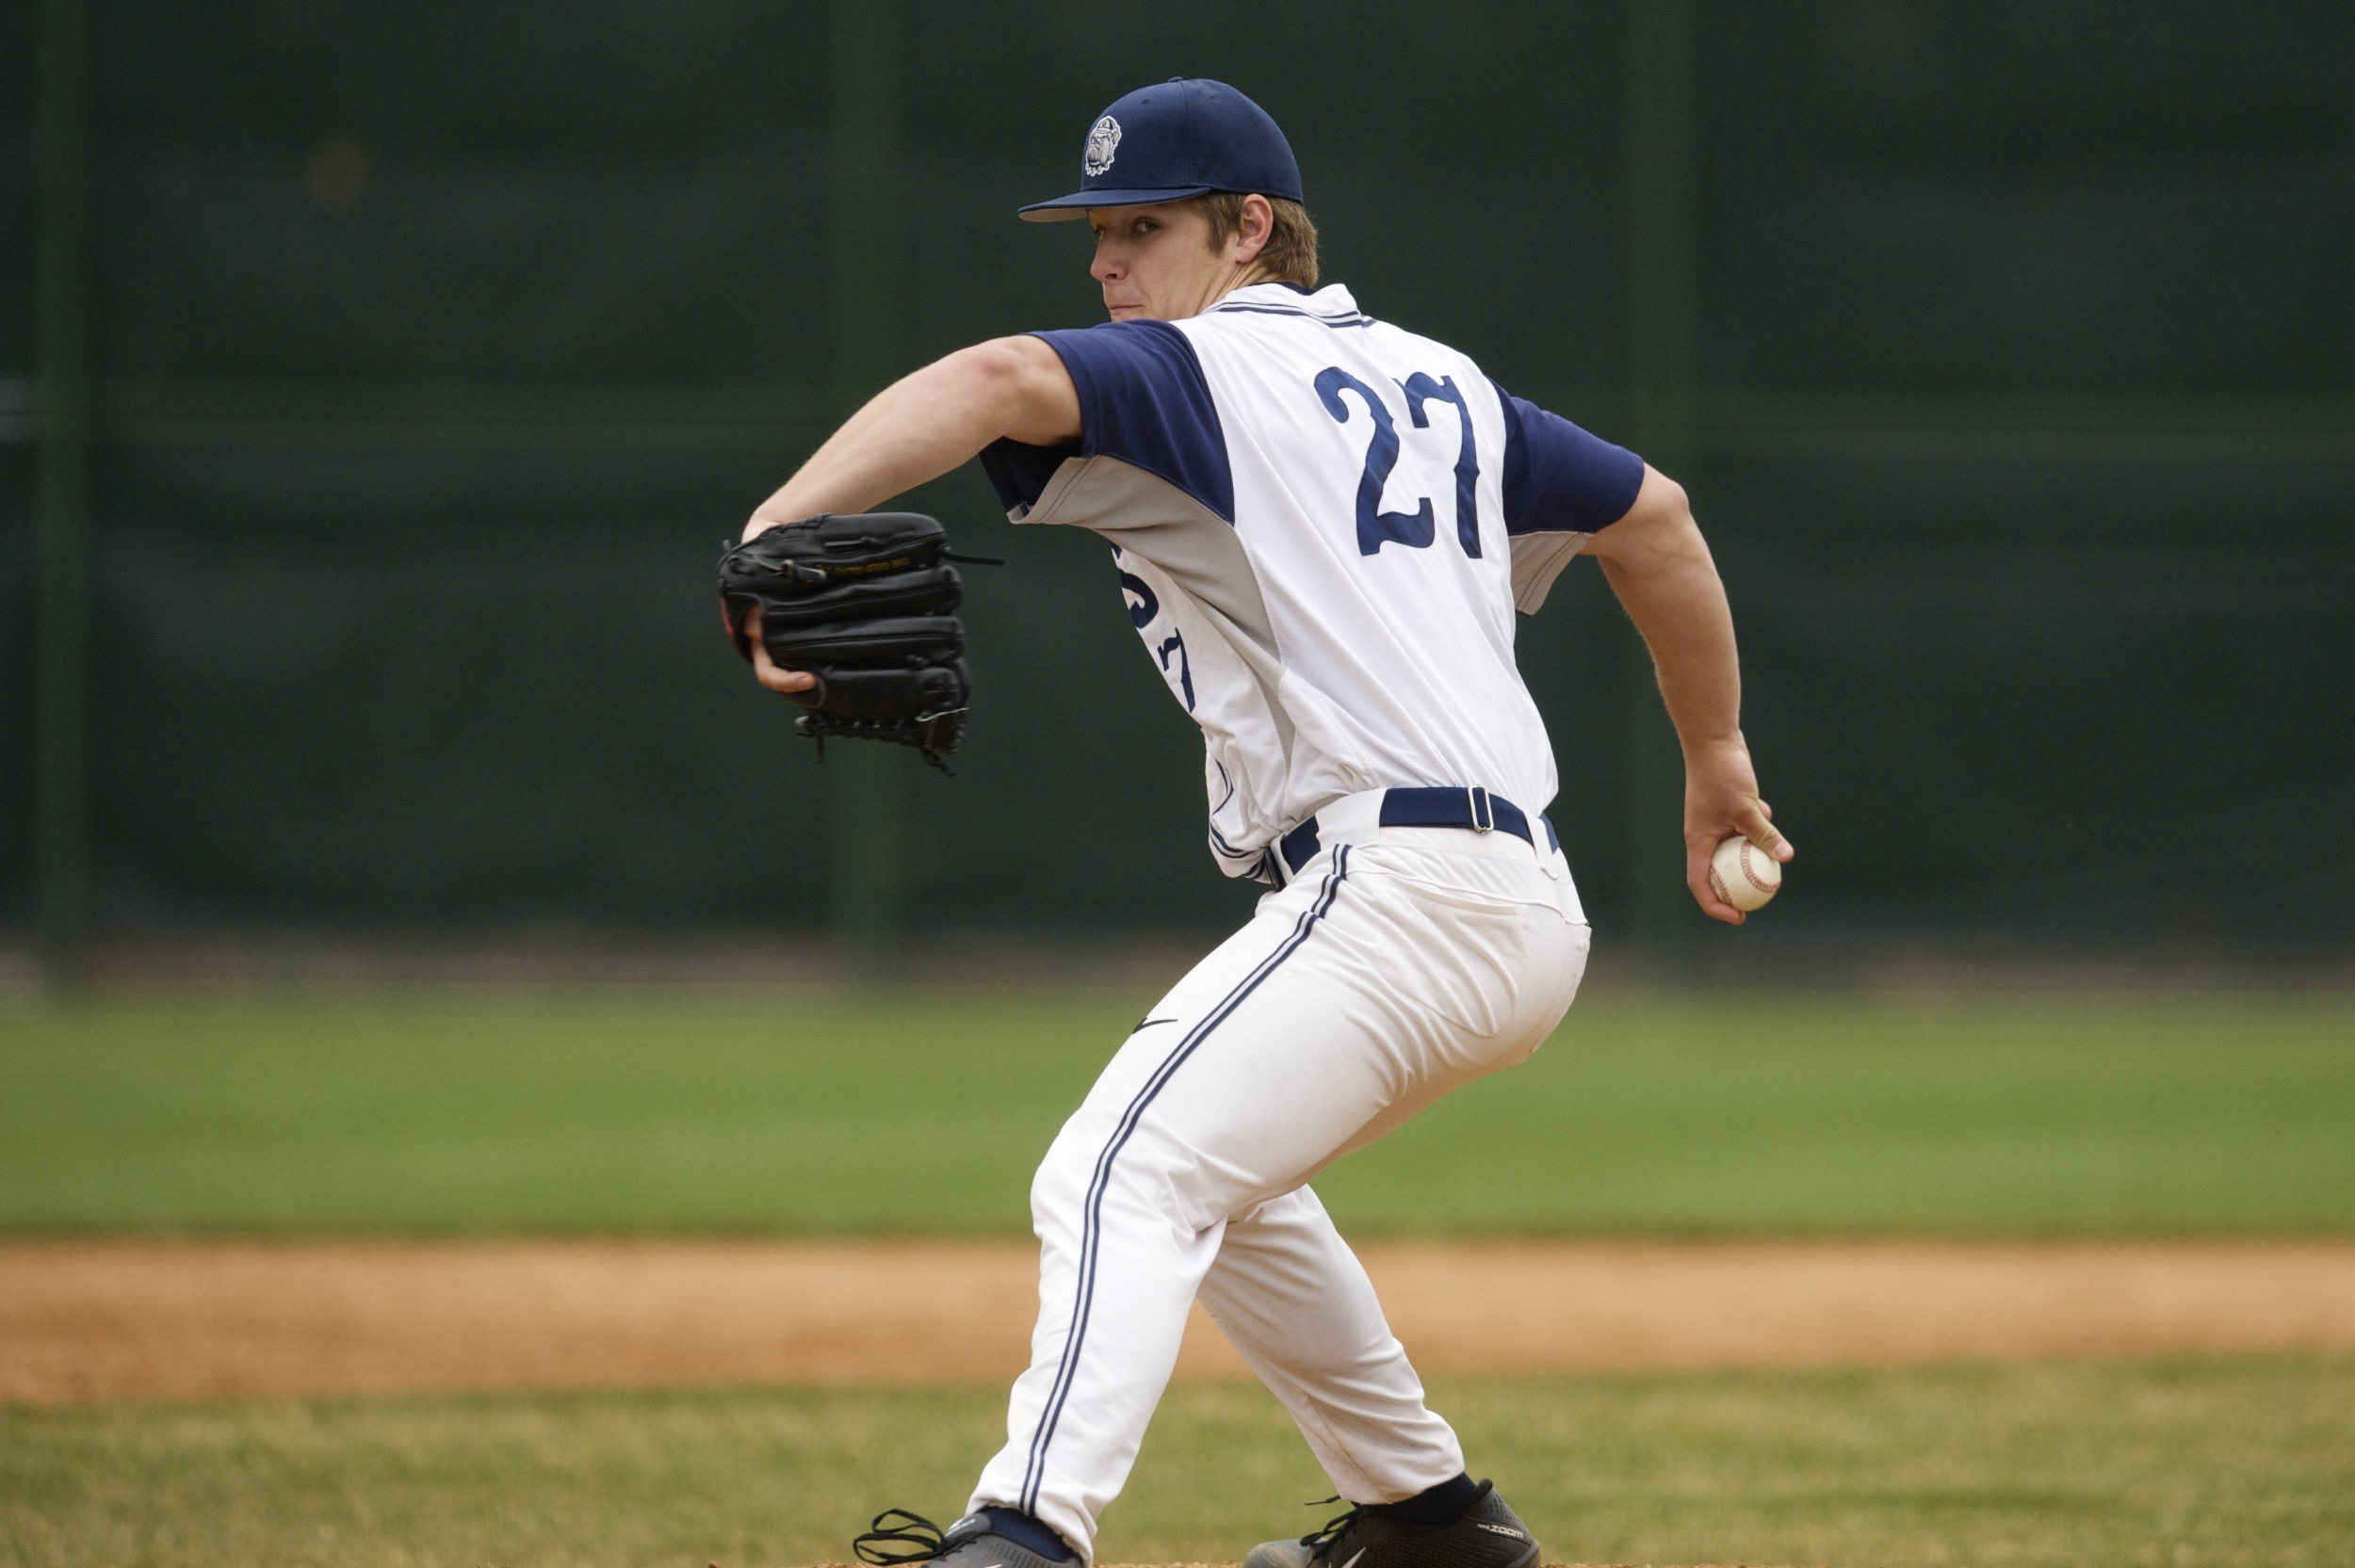 Matt Smith went six innings with eight strikeouts in a 7-1 win over Northwestern.